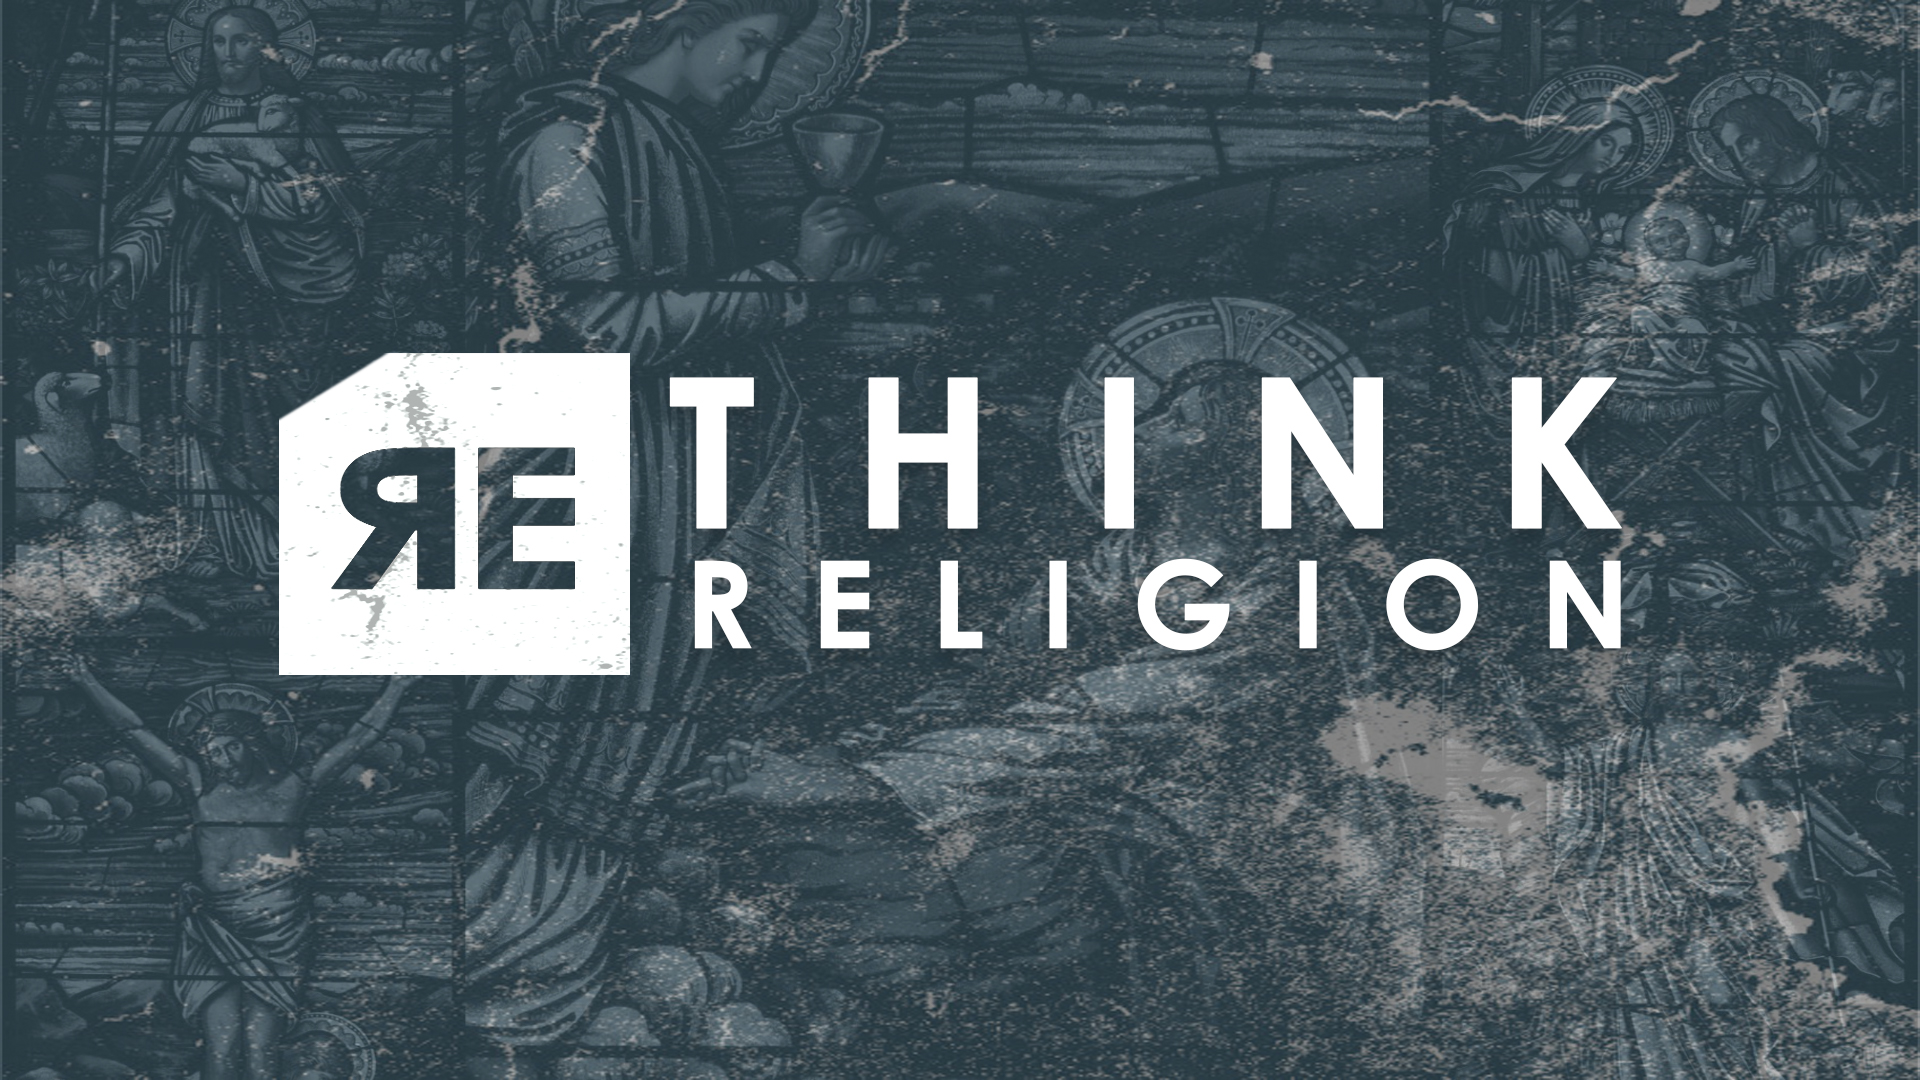 ReThink Religion Series Graphic 2019_title_slide.jpg